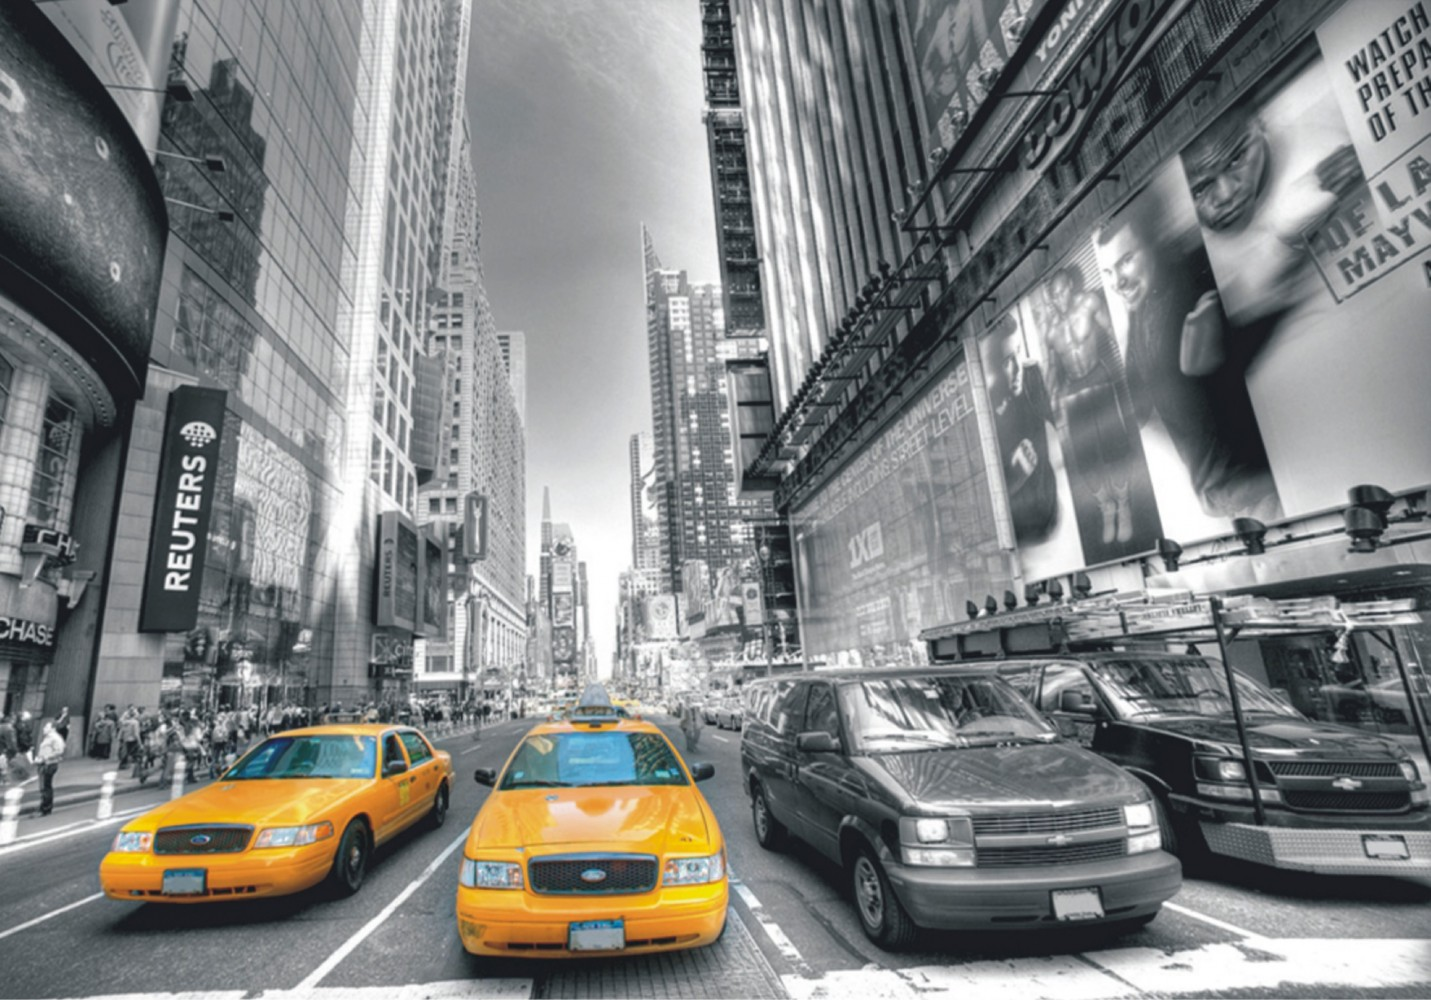 Fototapete Tapete New York Taxi Yellow Cap Manhattan NYC Foto 360 cm x 270 cm